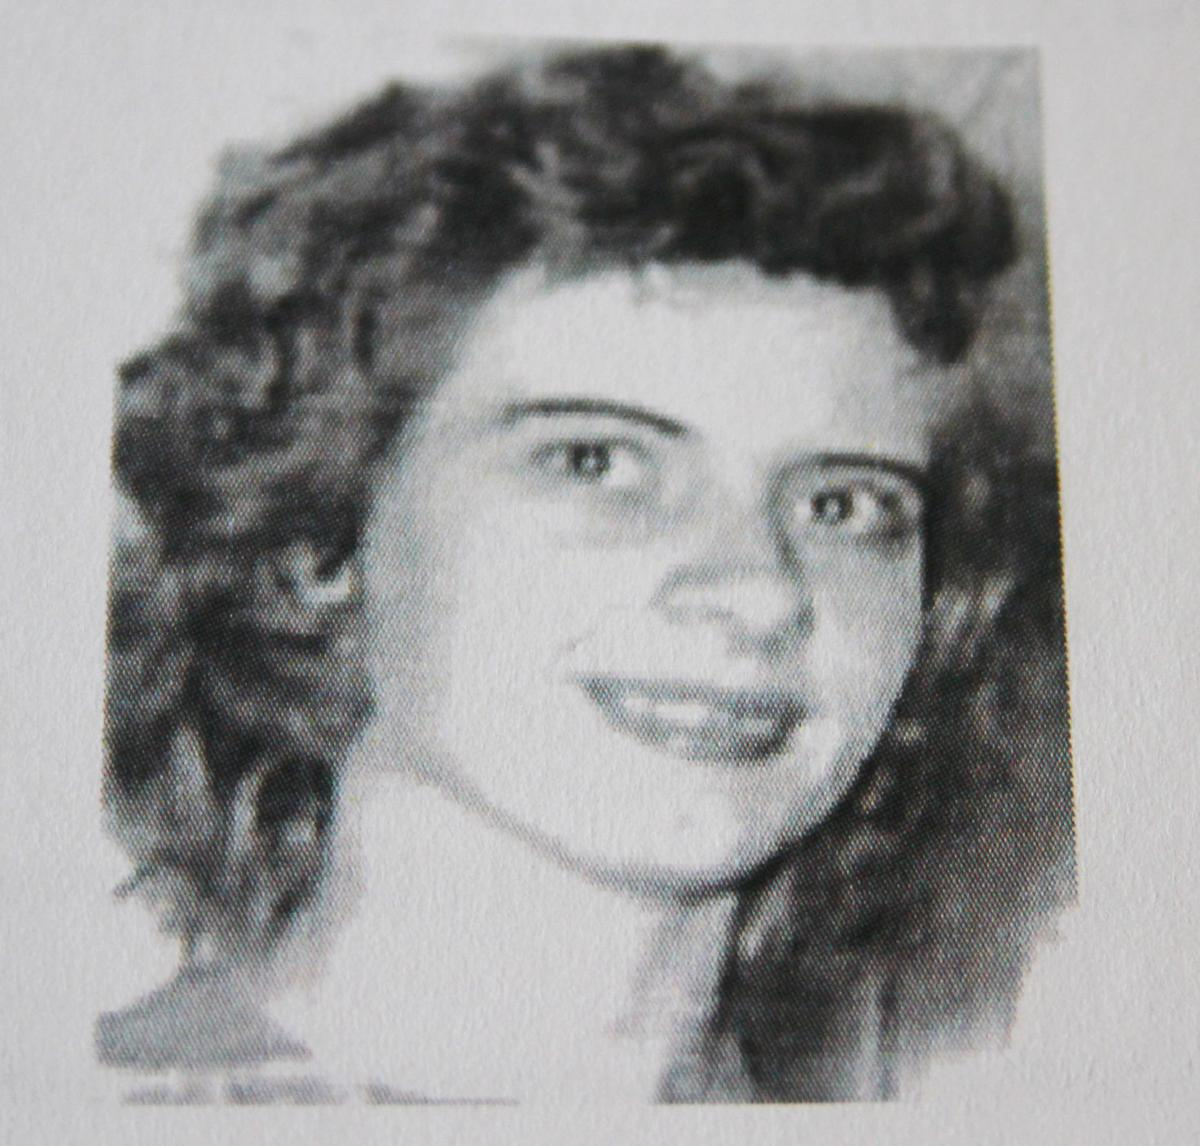 Area cold case mysteries keep investigators searching | Regional